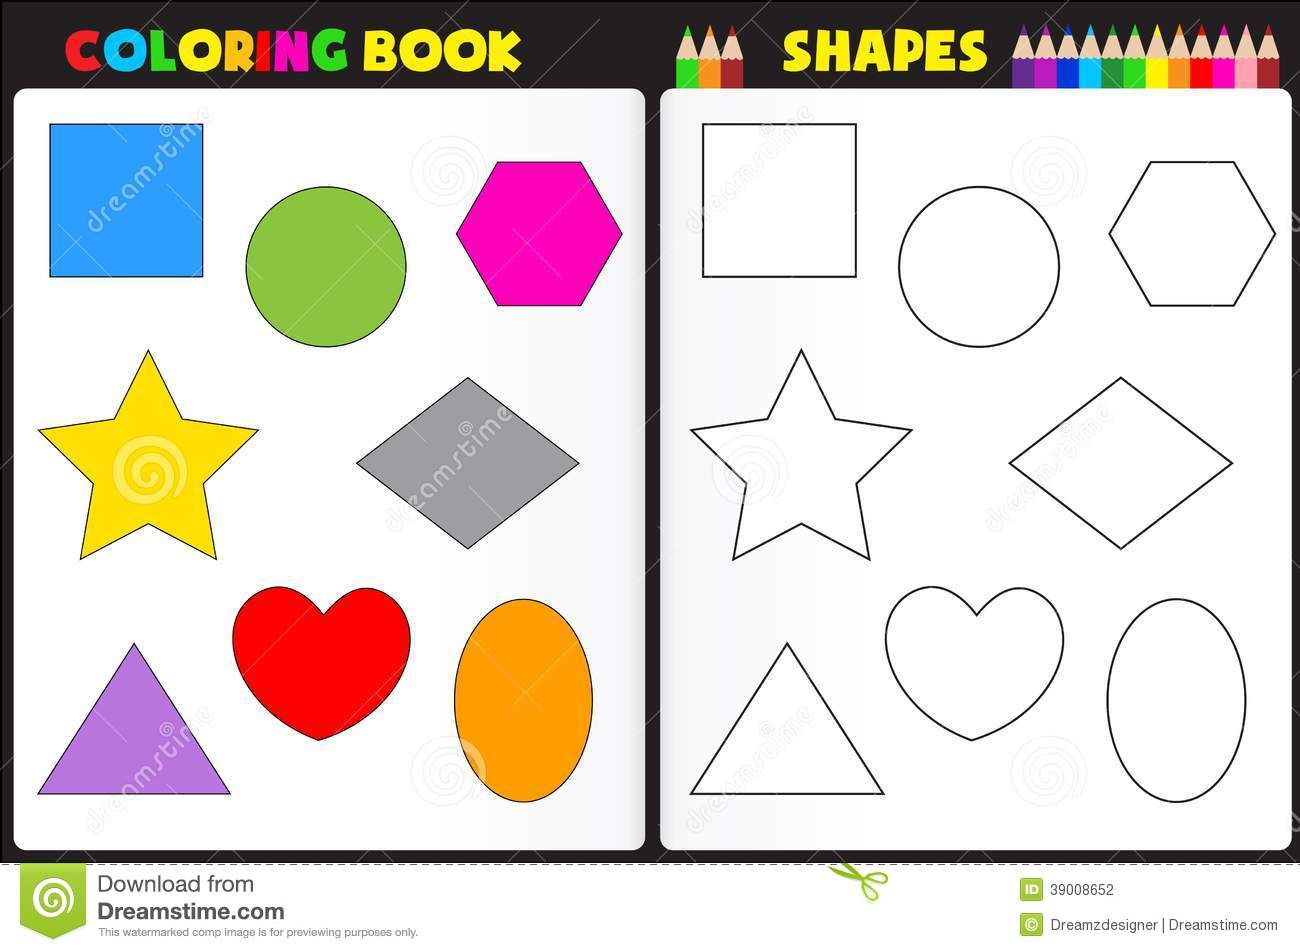 Worksheet Shapes And Colors For Kids worksheet shapes and color mikyu free to coloring kids pages posts